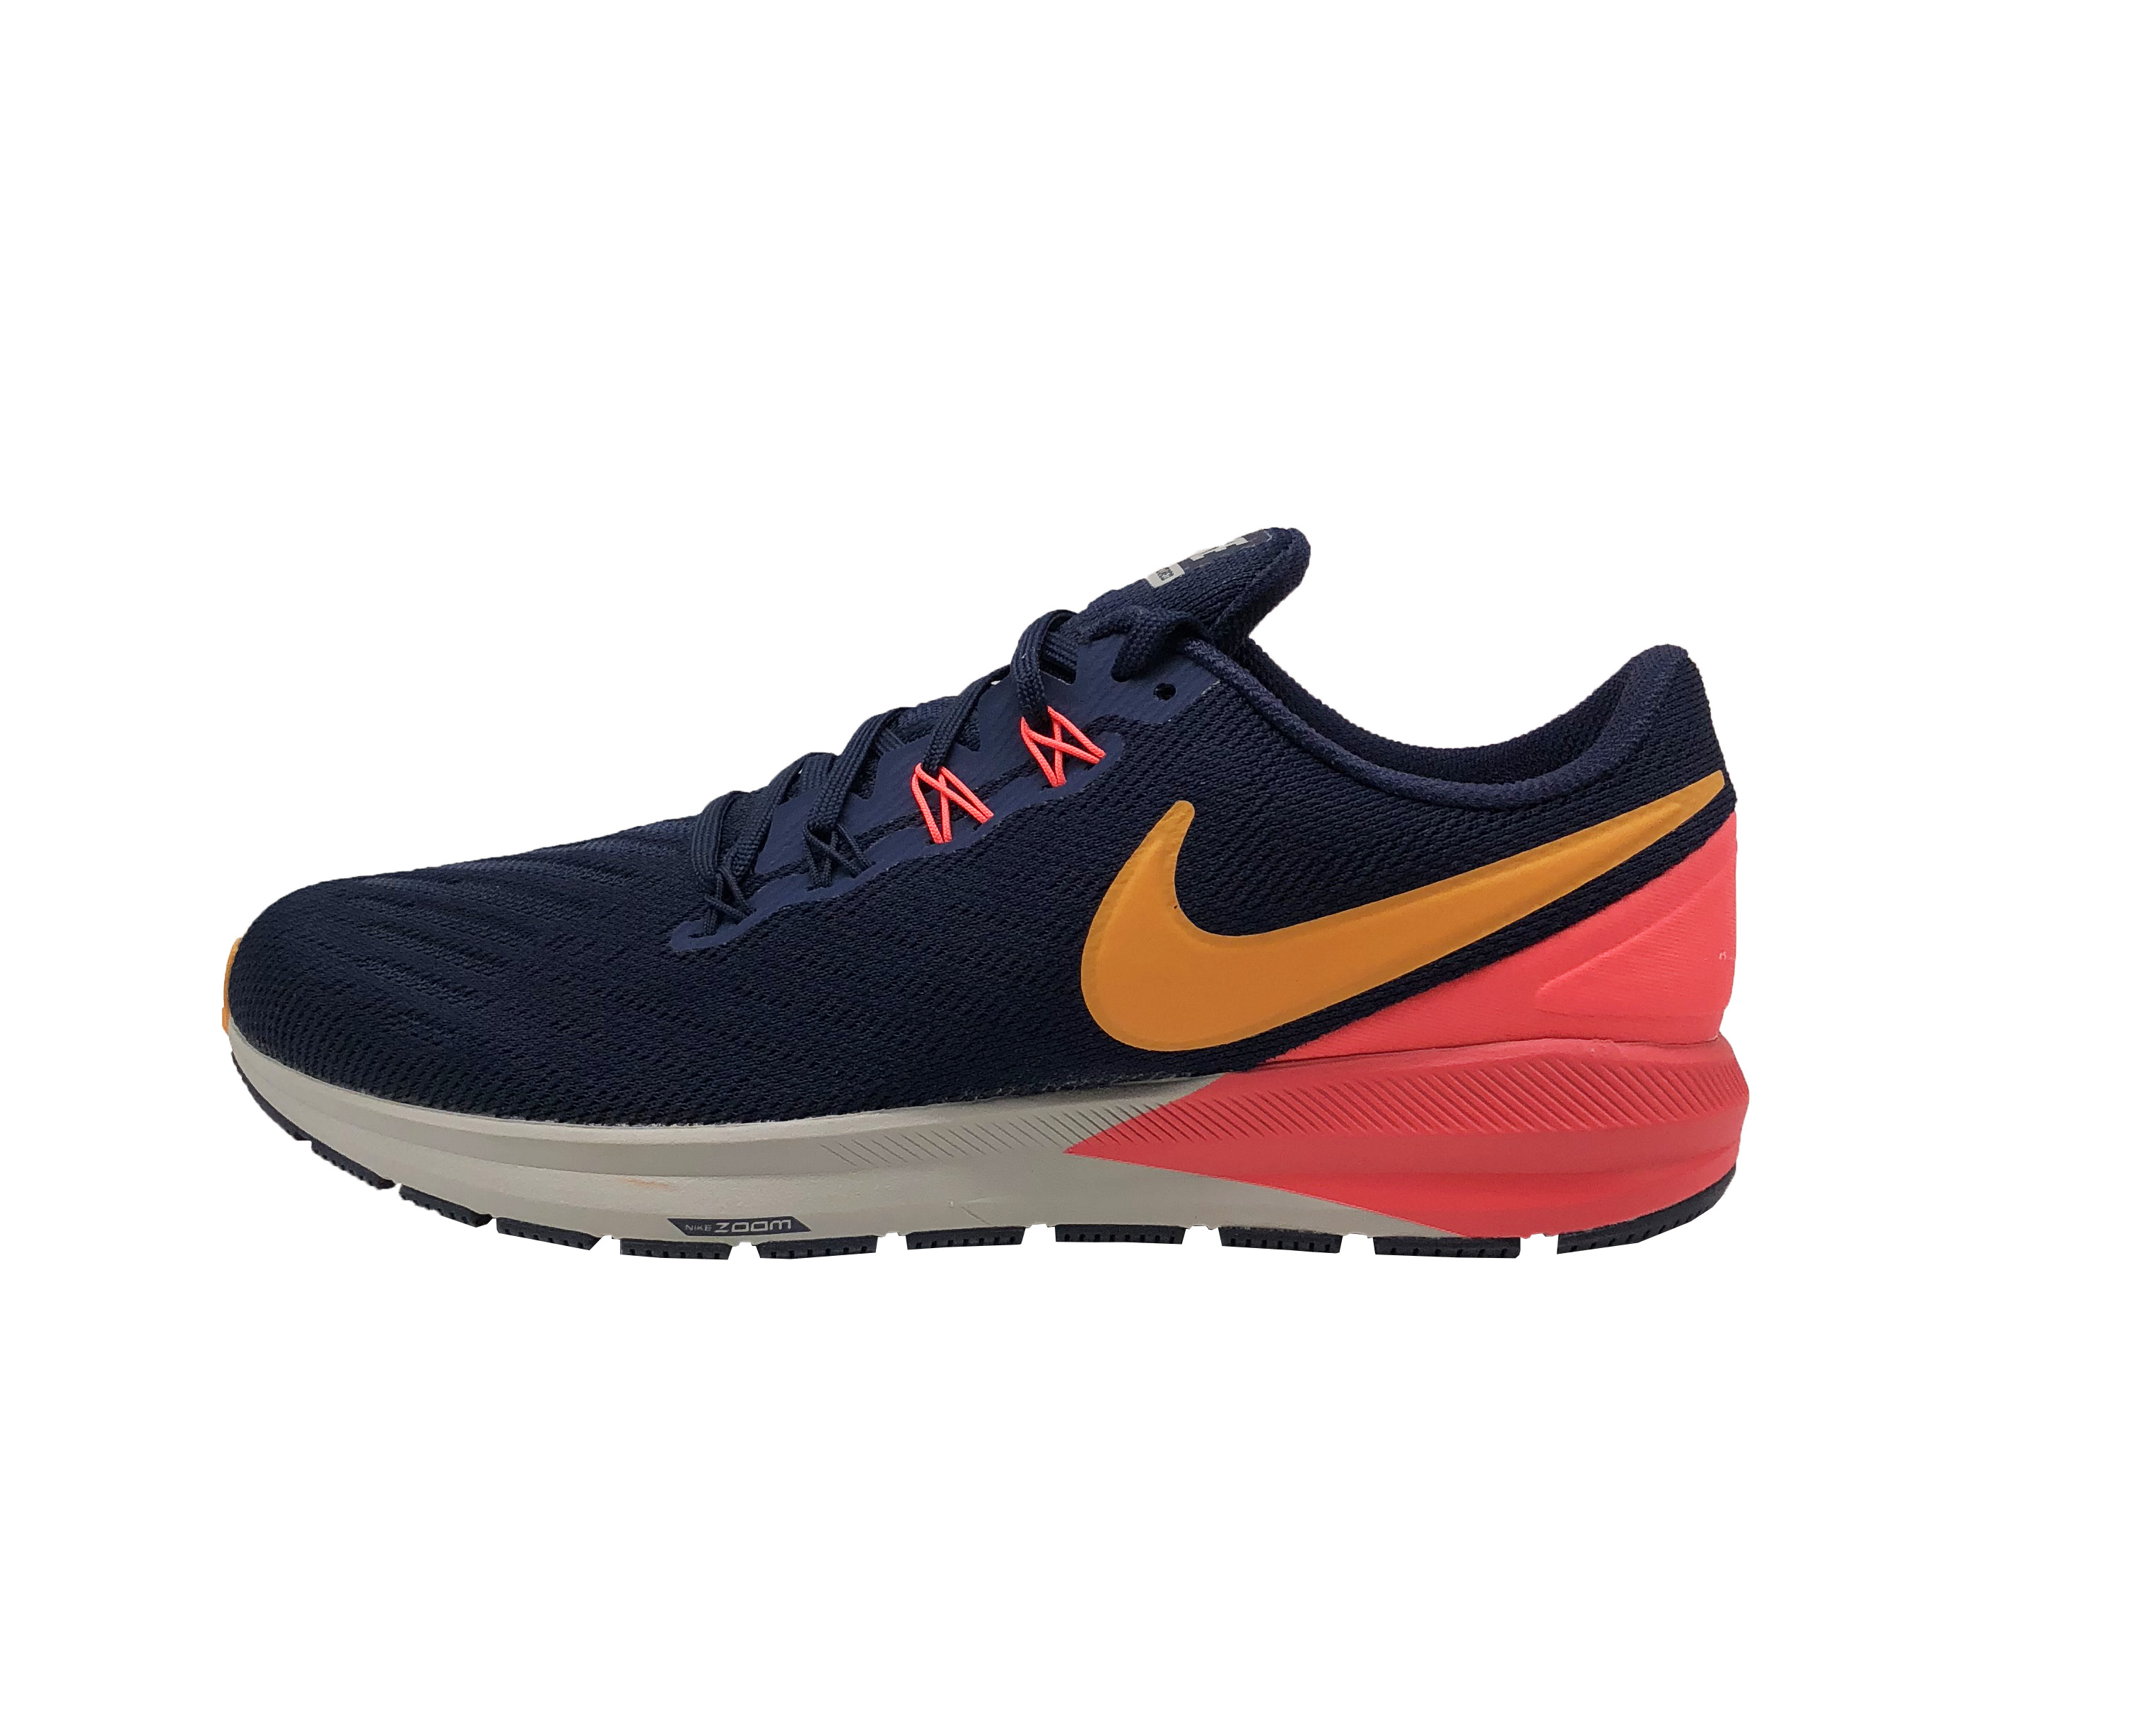 the best attitude 10853 ae1f8 Details about Nike Air Zoom Structure 22 AA1636 400 Mens Trainers